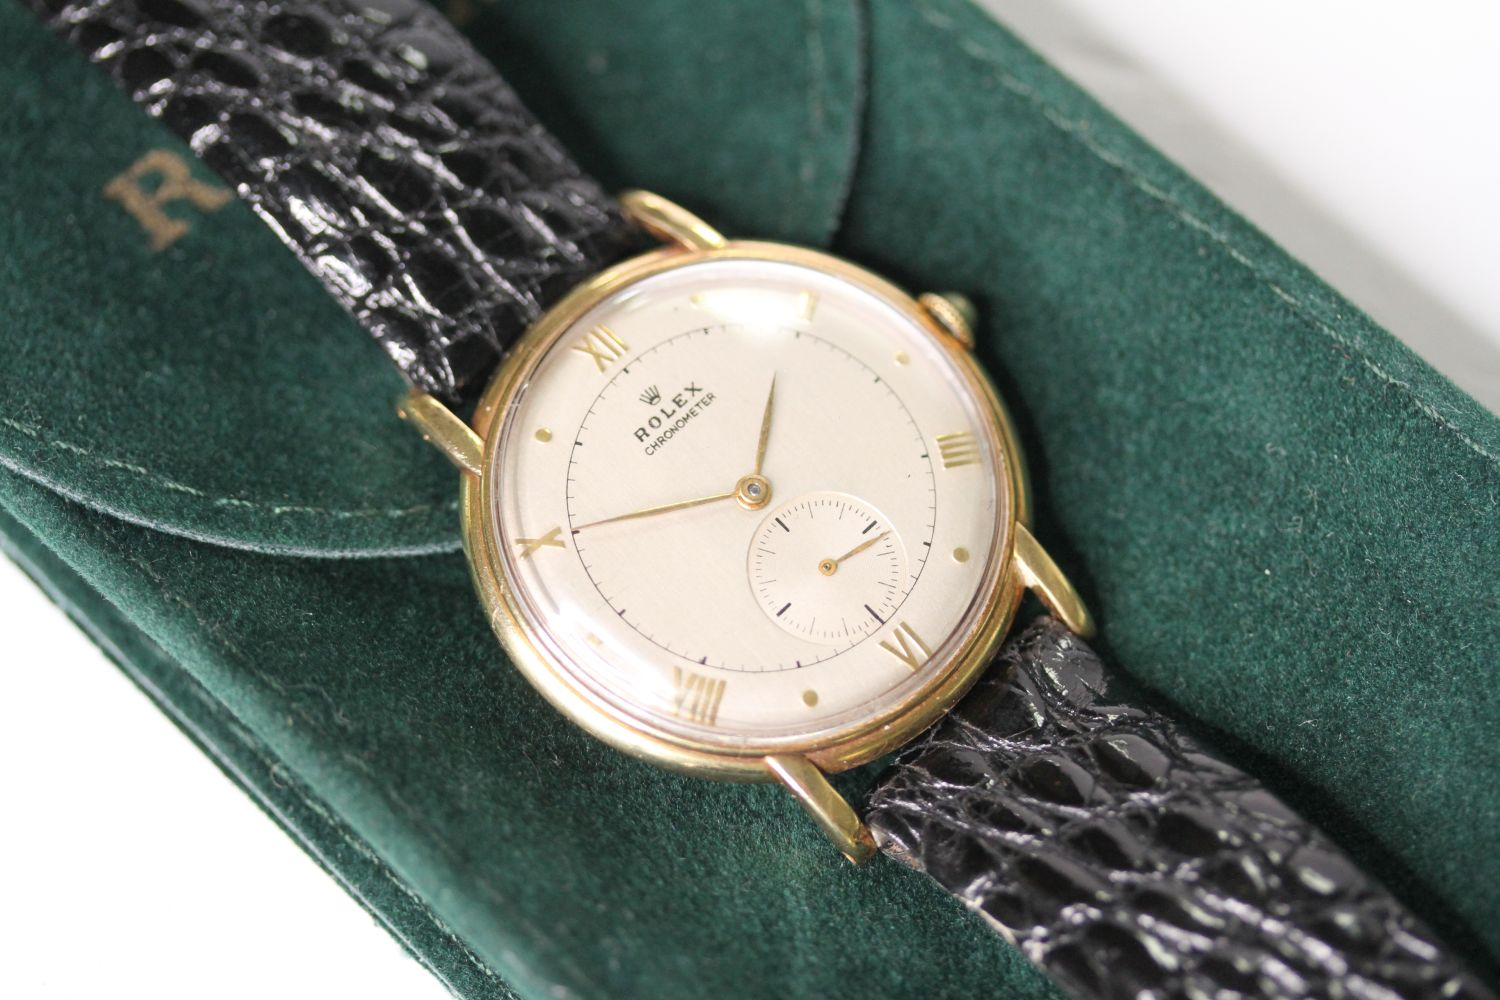 VINTAGE ROLEX OVERSIZE WRISTWATCH CIRCA 1940s, circular silver dial with roman numerals and dot hour - Image 2 of 5